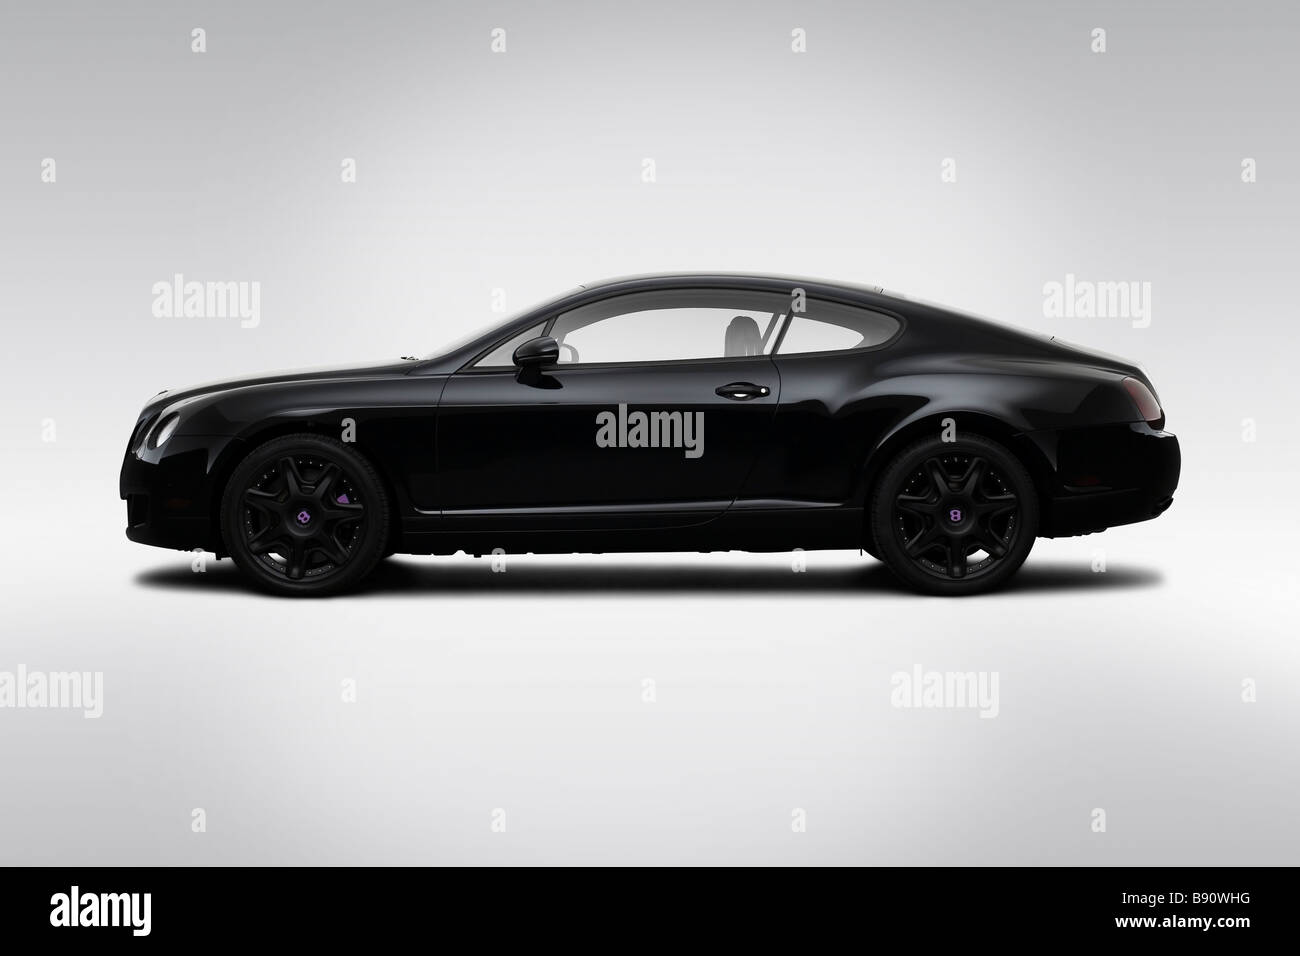 2009 Bentley Continental GT in Black - Drivers Side Profile - Stock Image